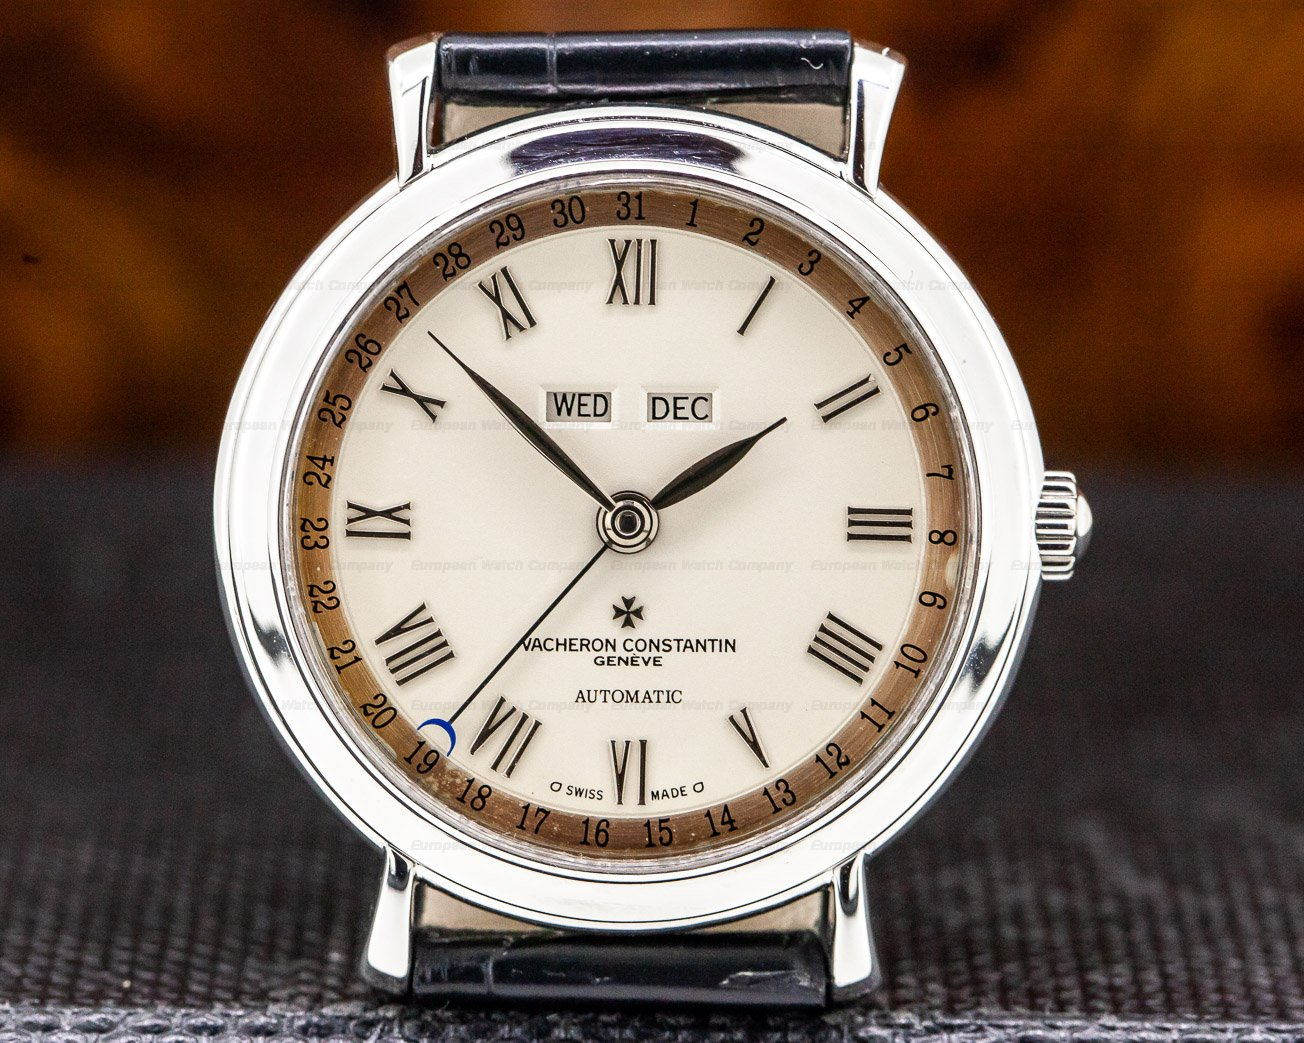 Vacheron Constantin 47051/000G-8759 Triple Date 18K White Gold / White Gold Tang Buckle PATINA